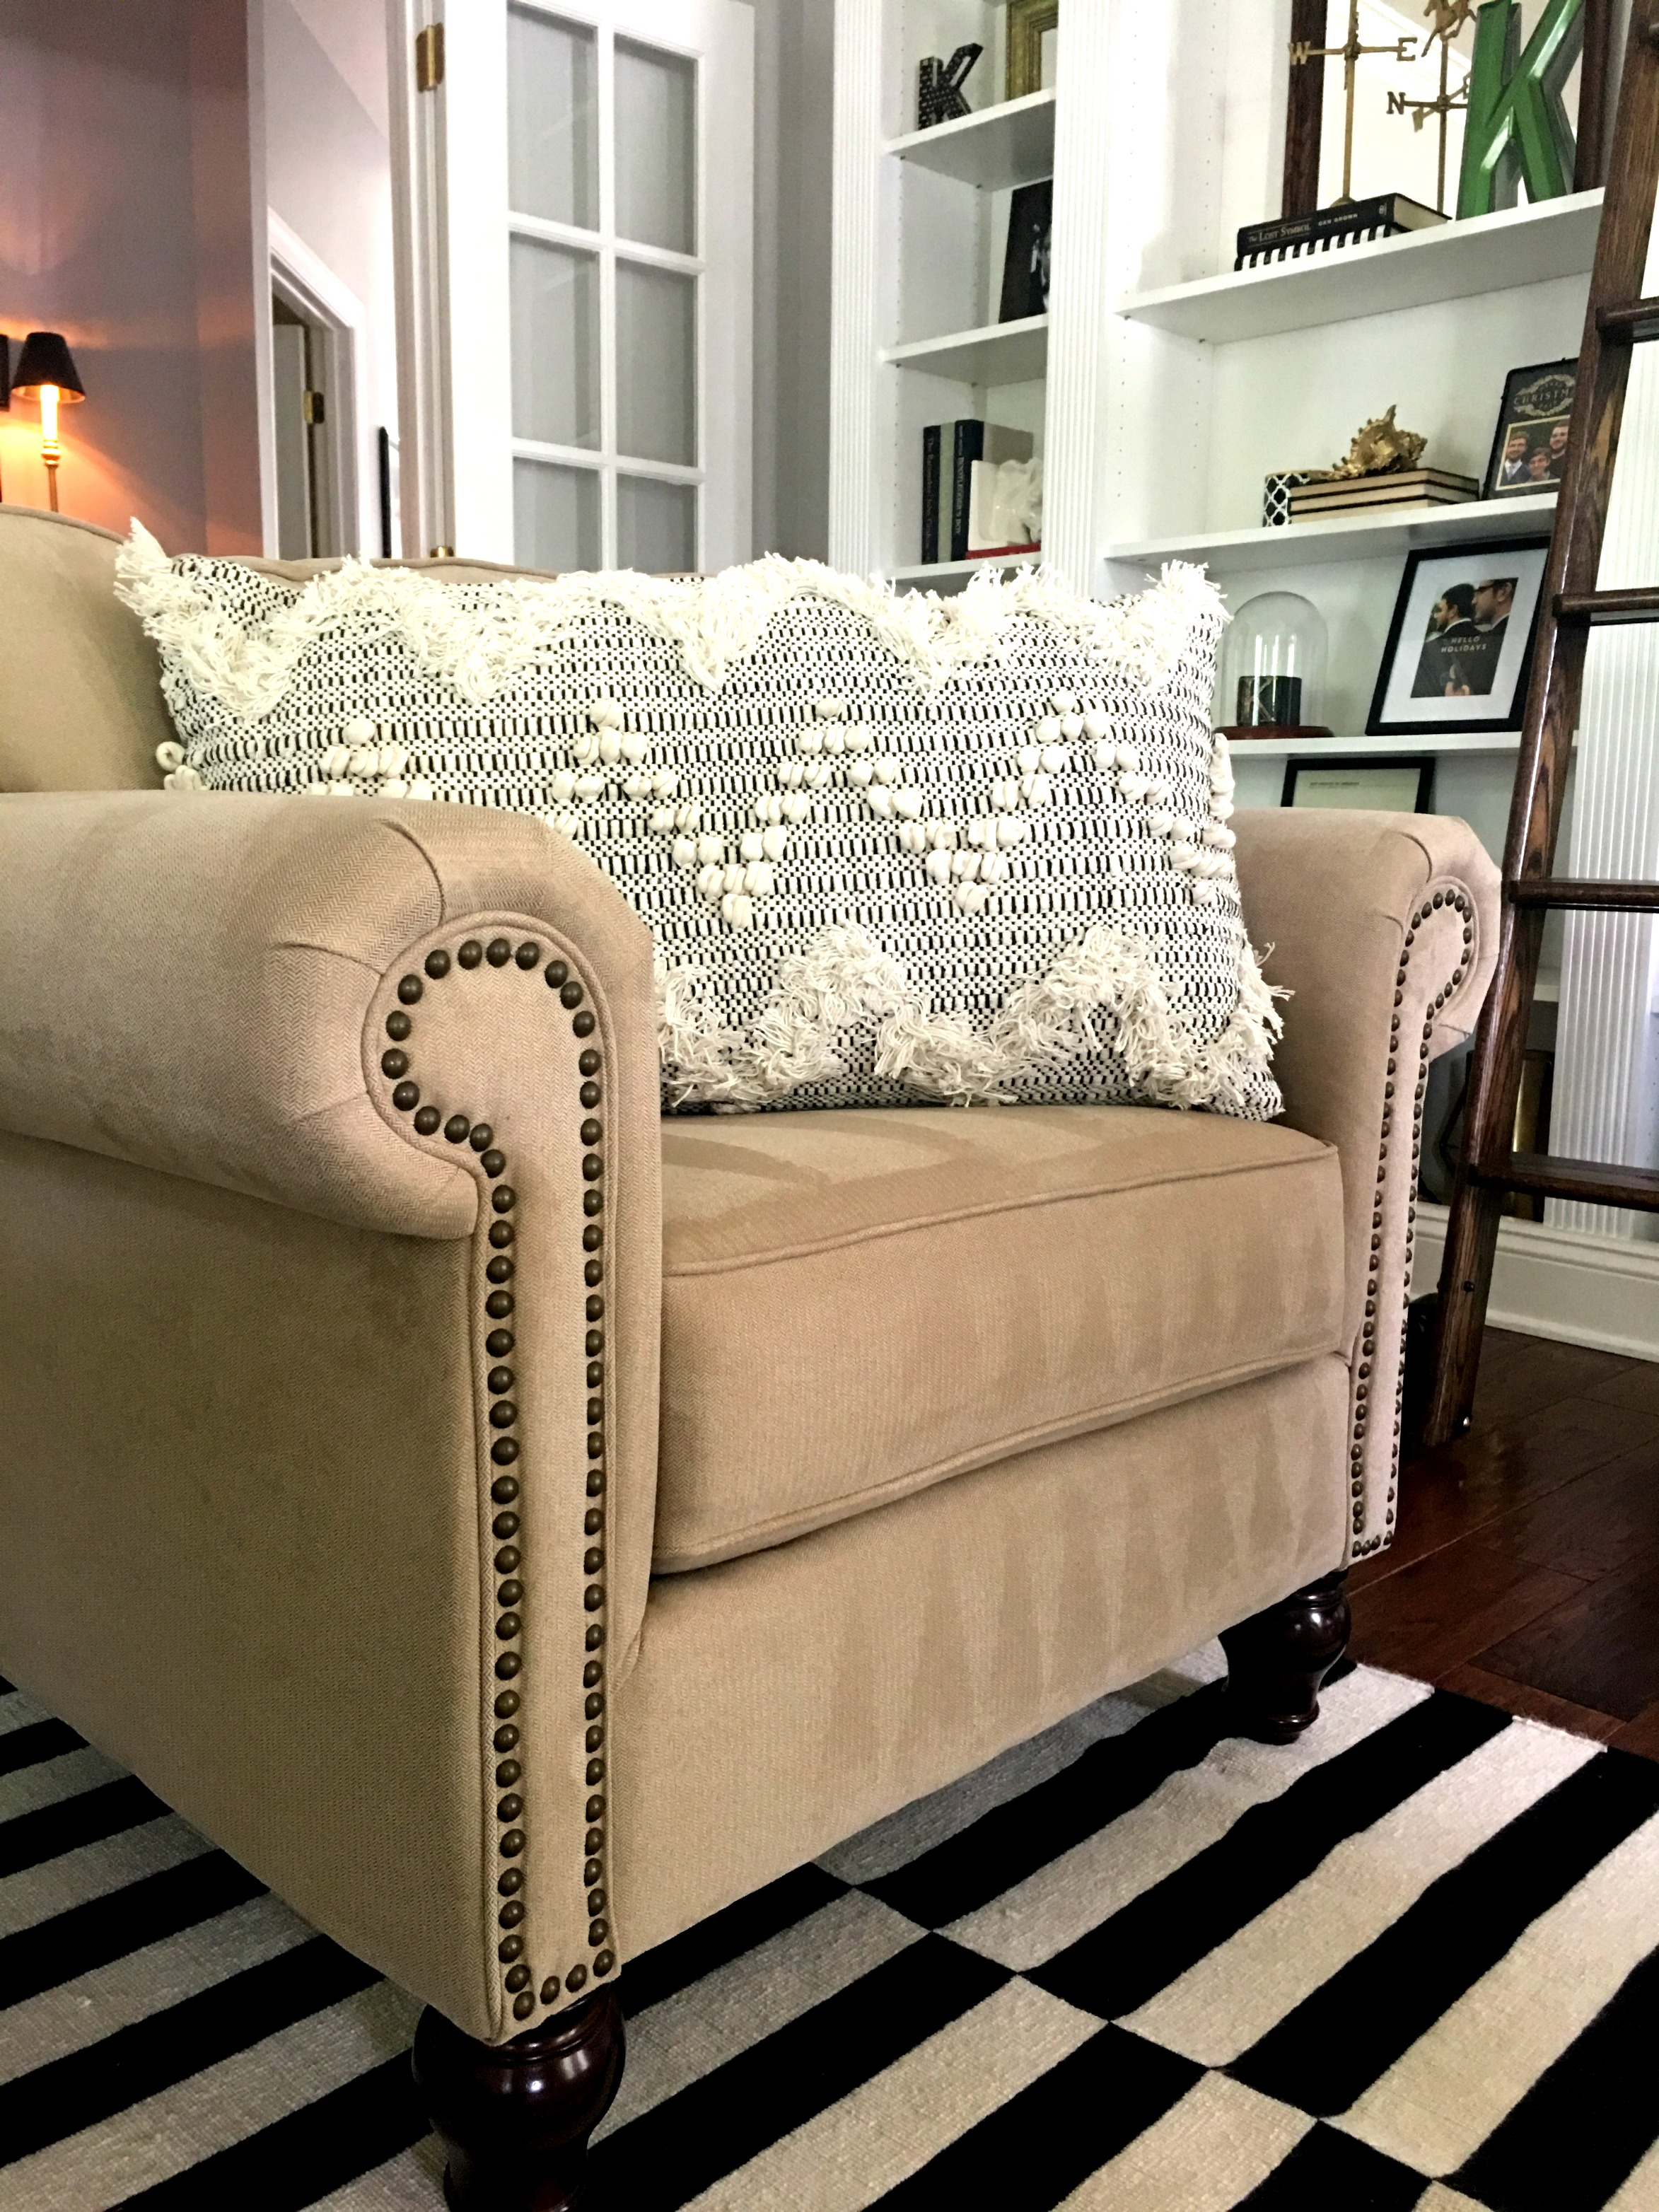 handcrafted home goods gallery connor giveaway delight of throws pillow a susan pillows cushion blanket wit